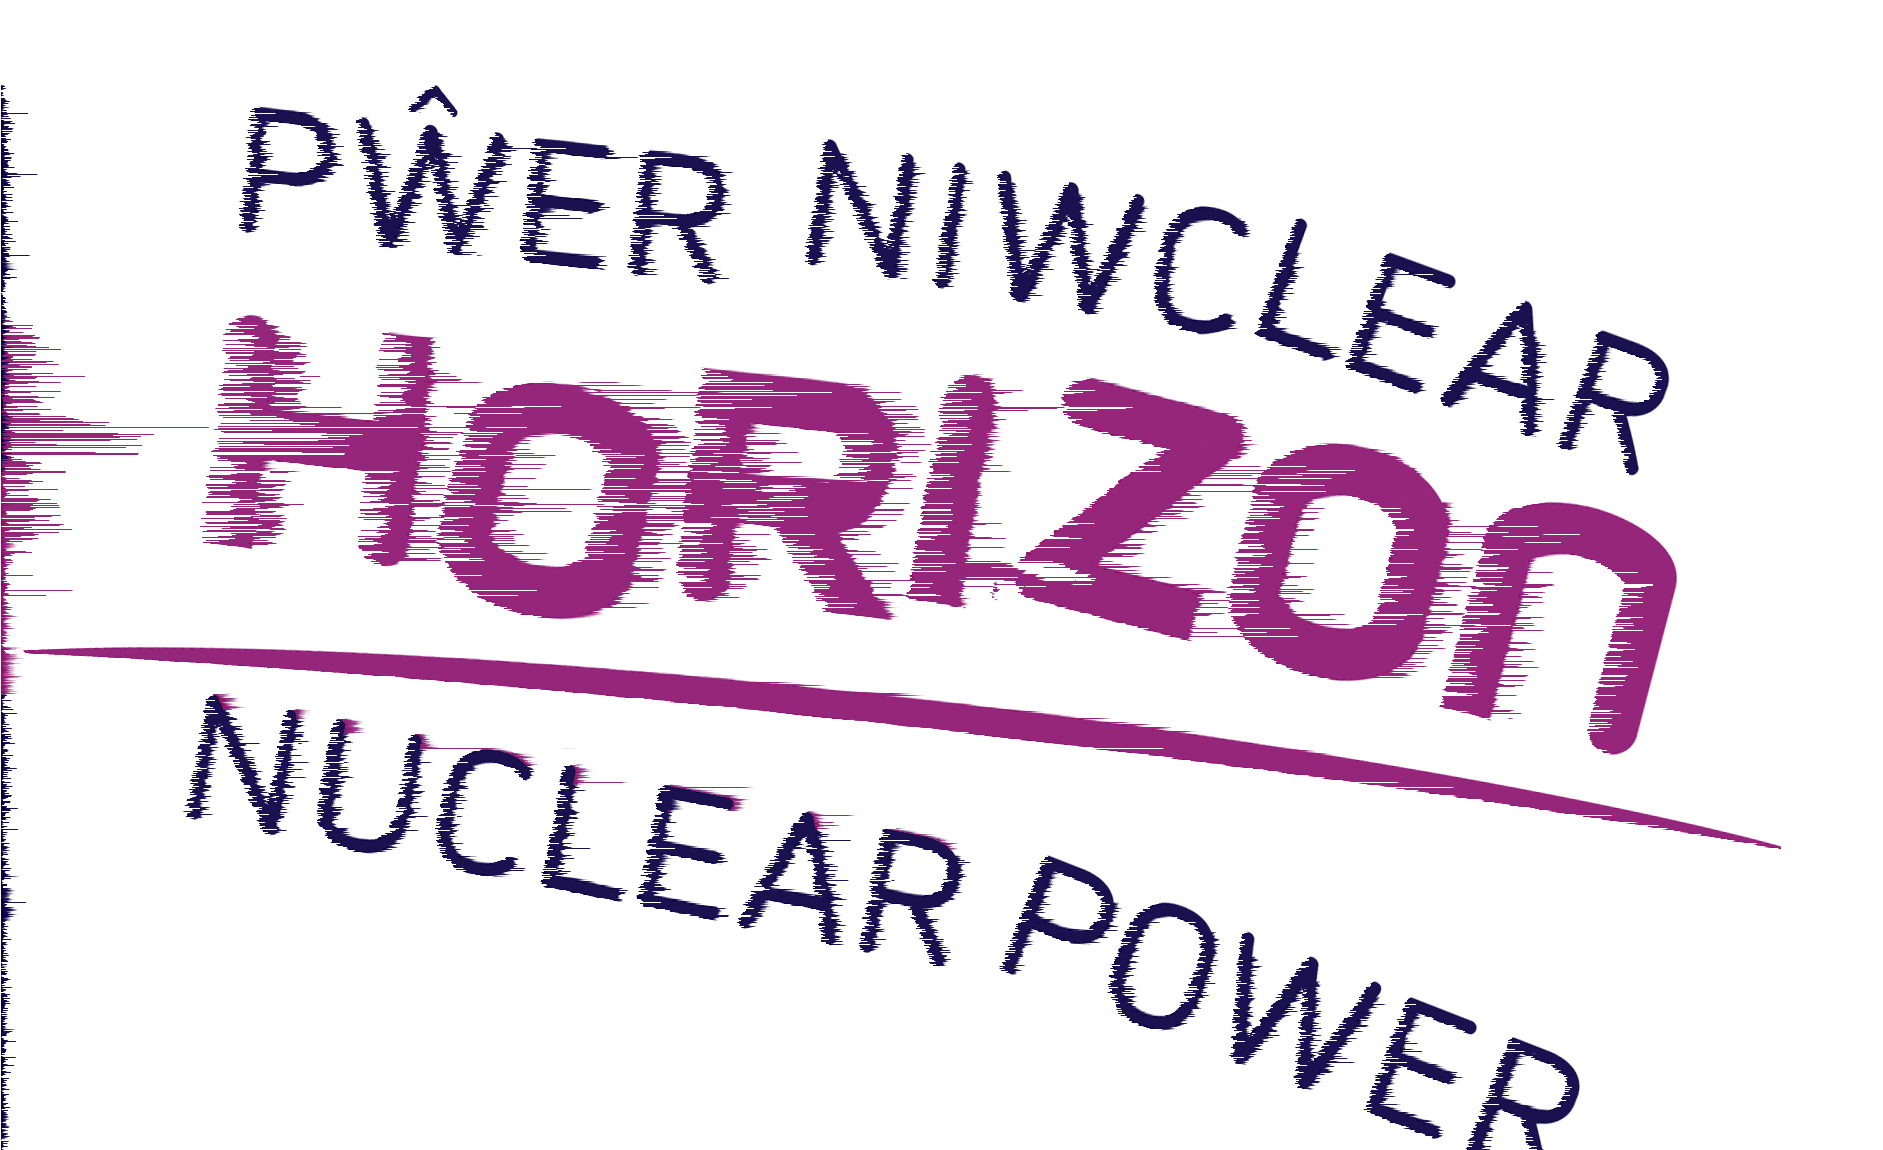 Horizon Nuclear Failure